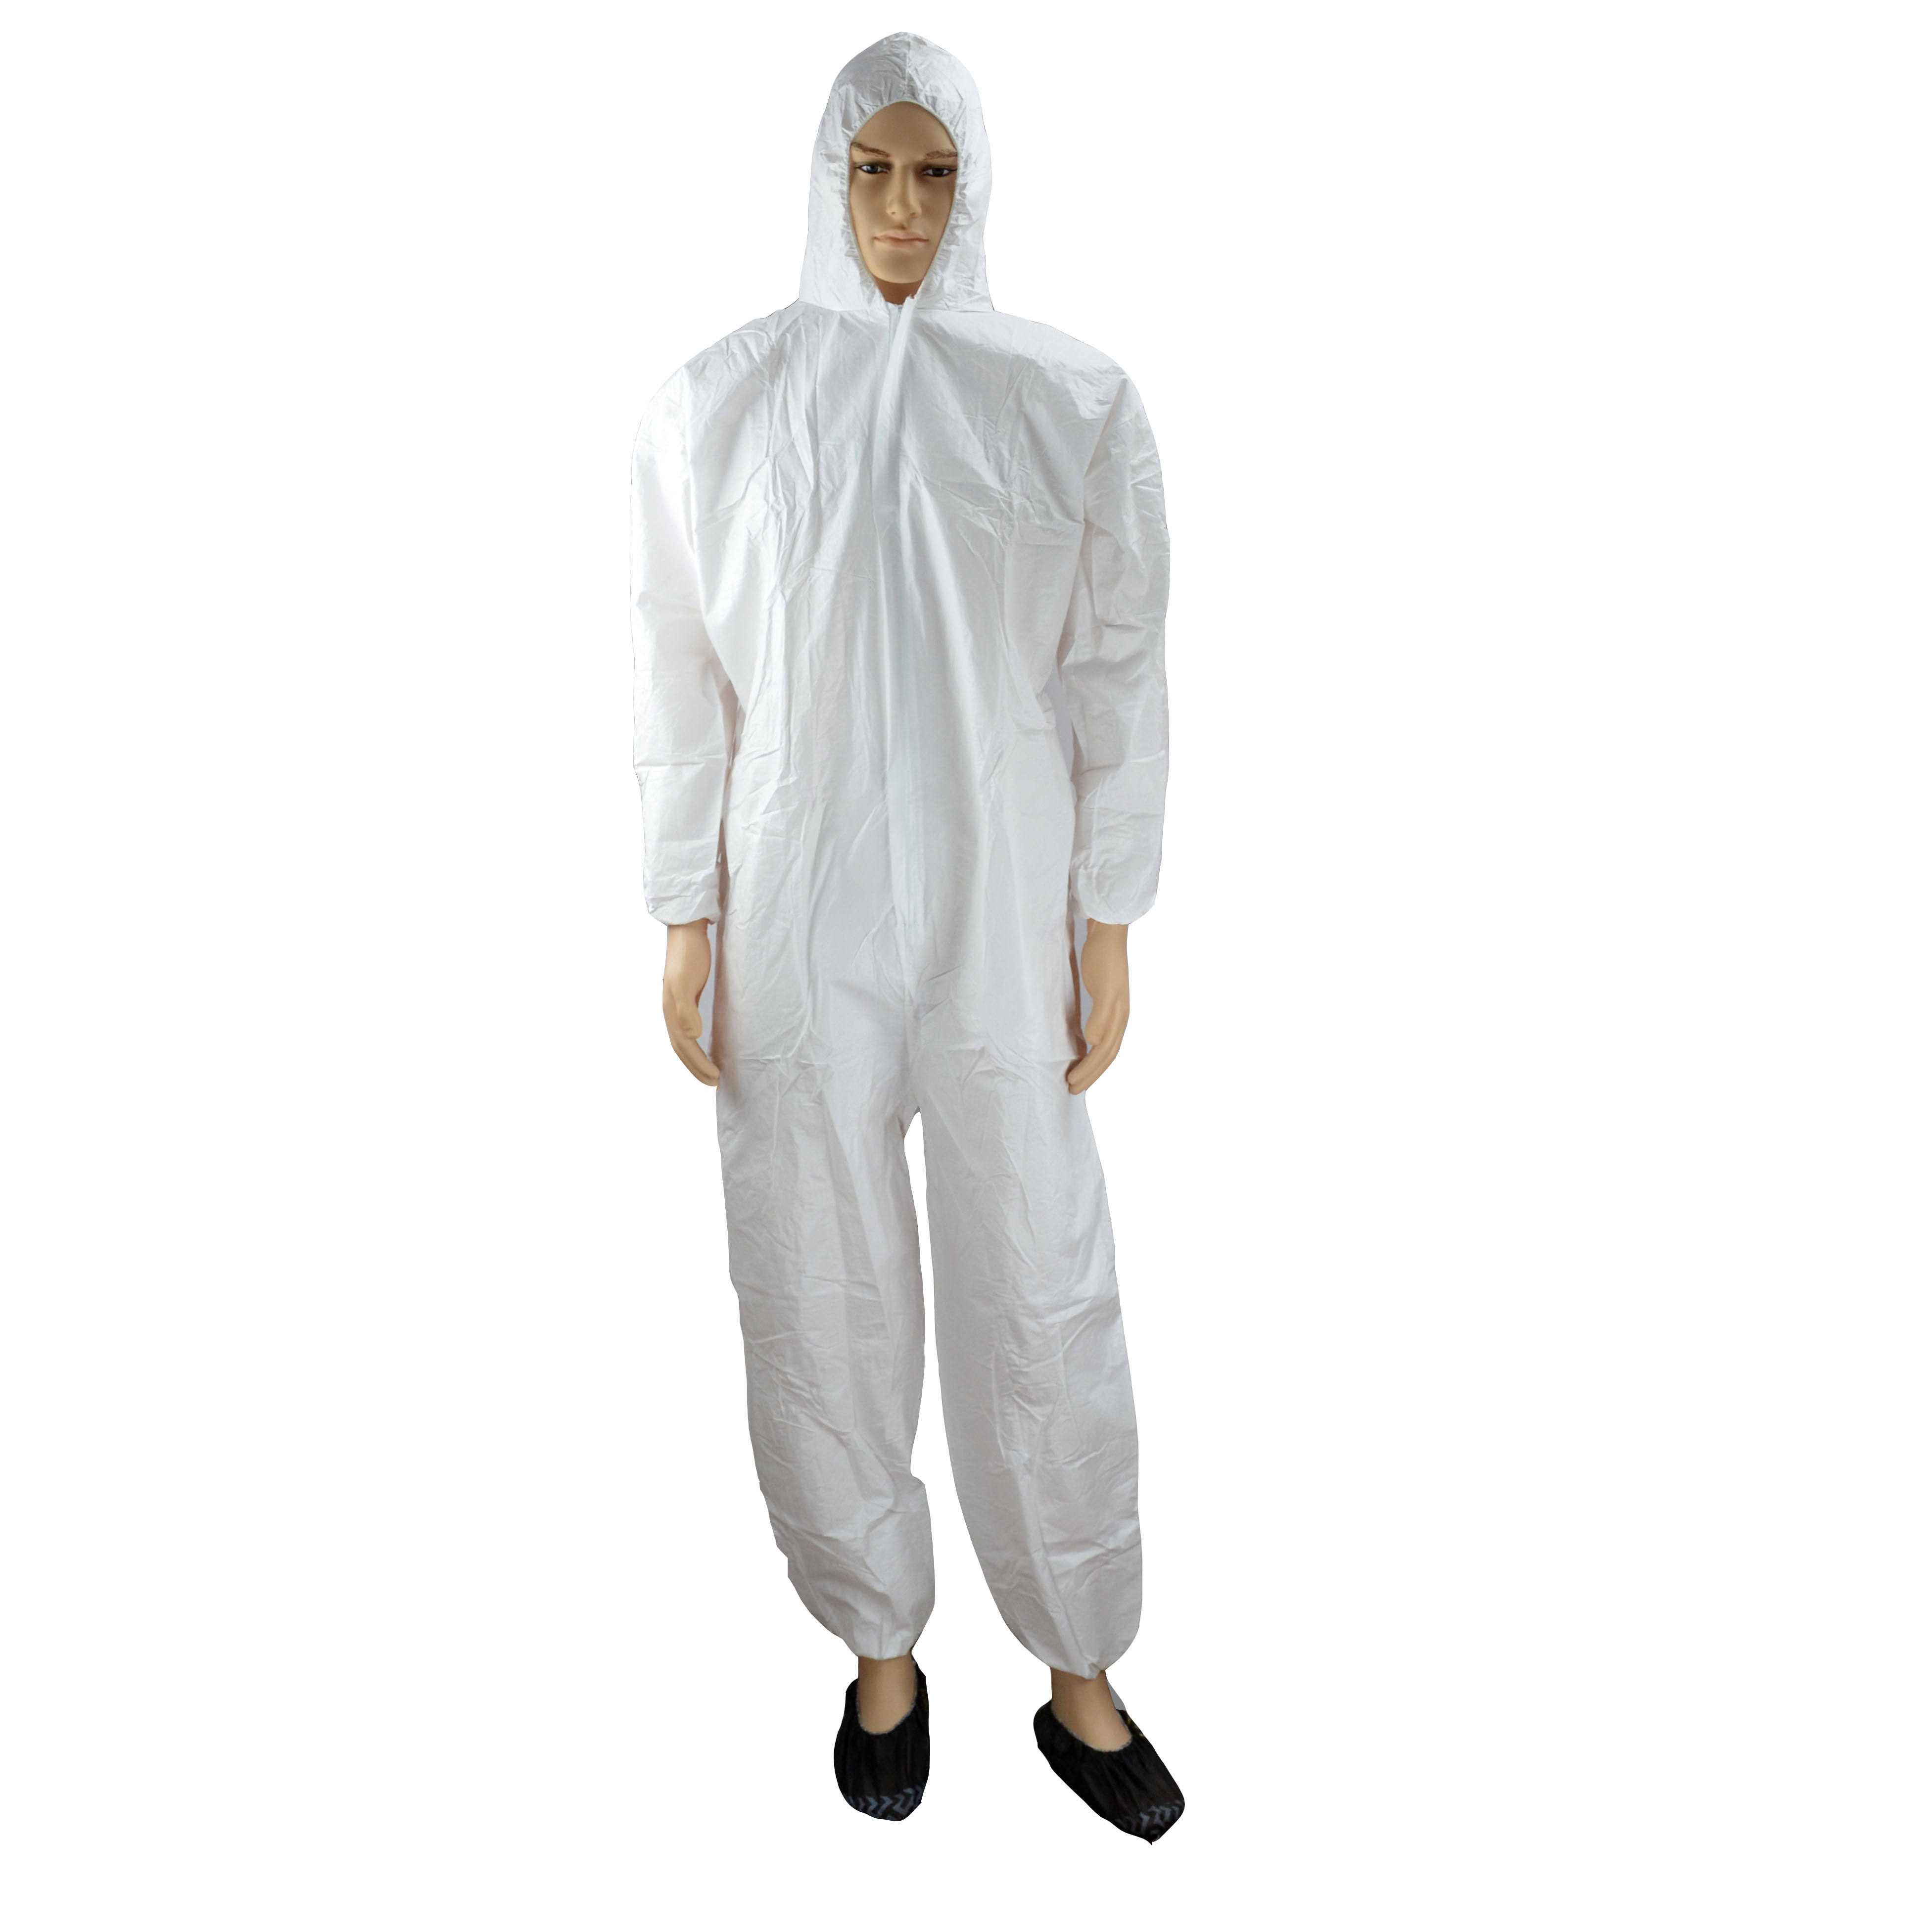 Disposable work wear protective coverall for chemical